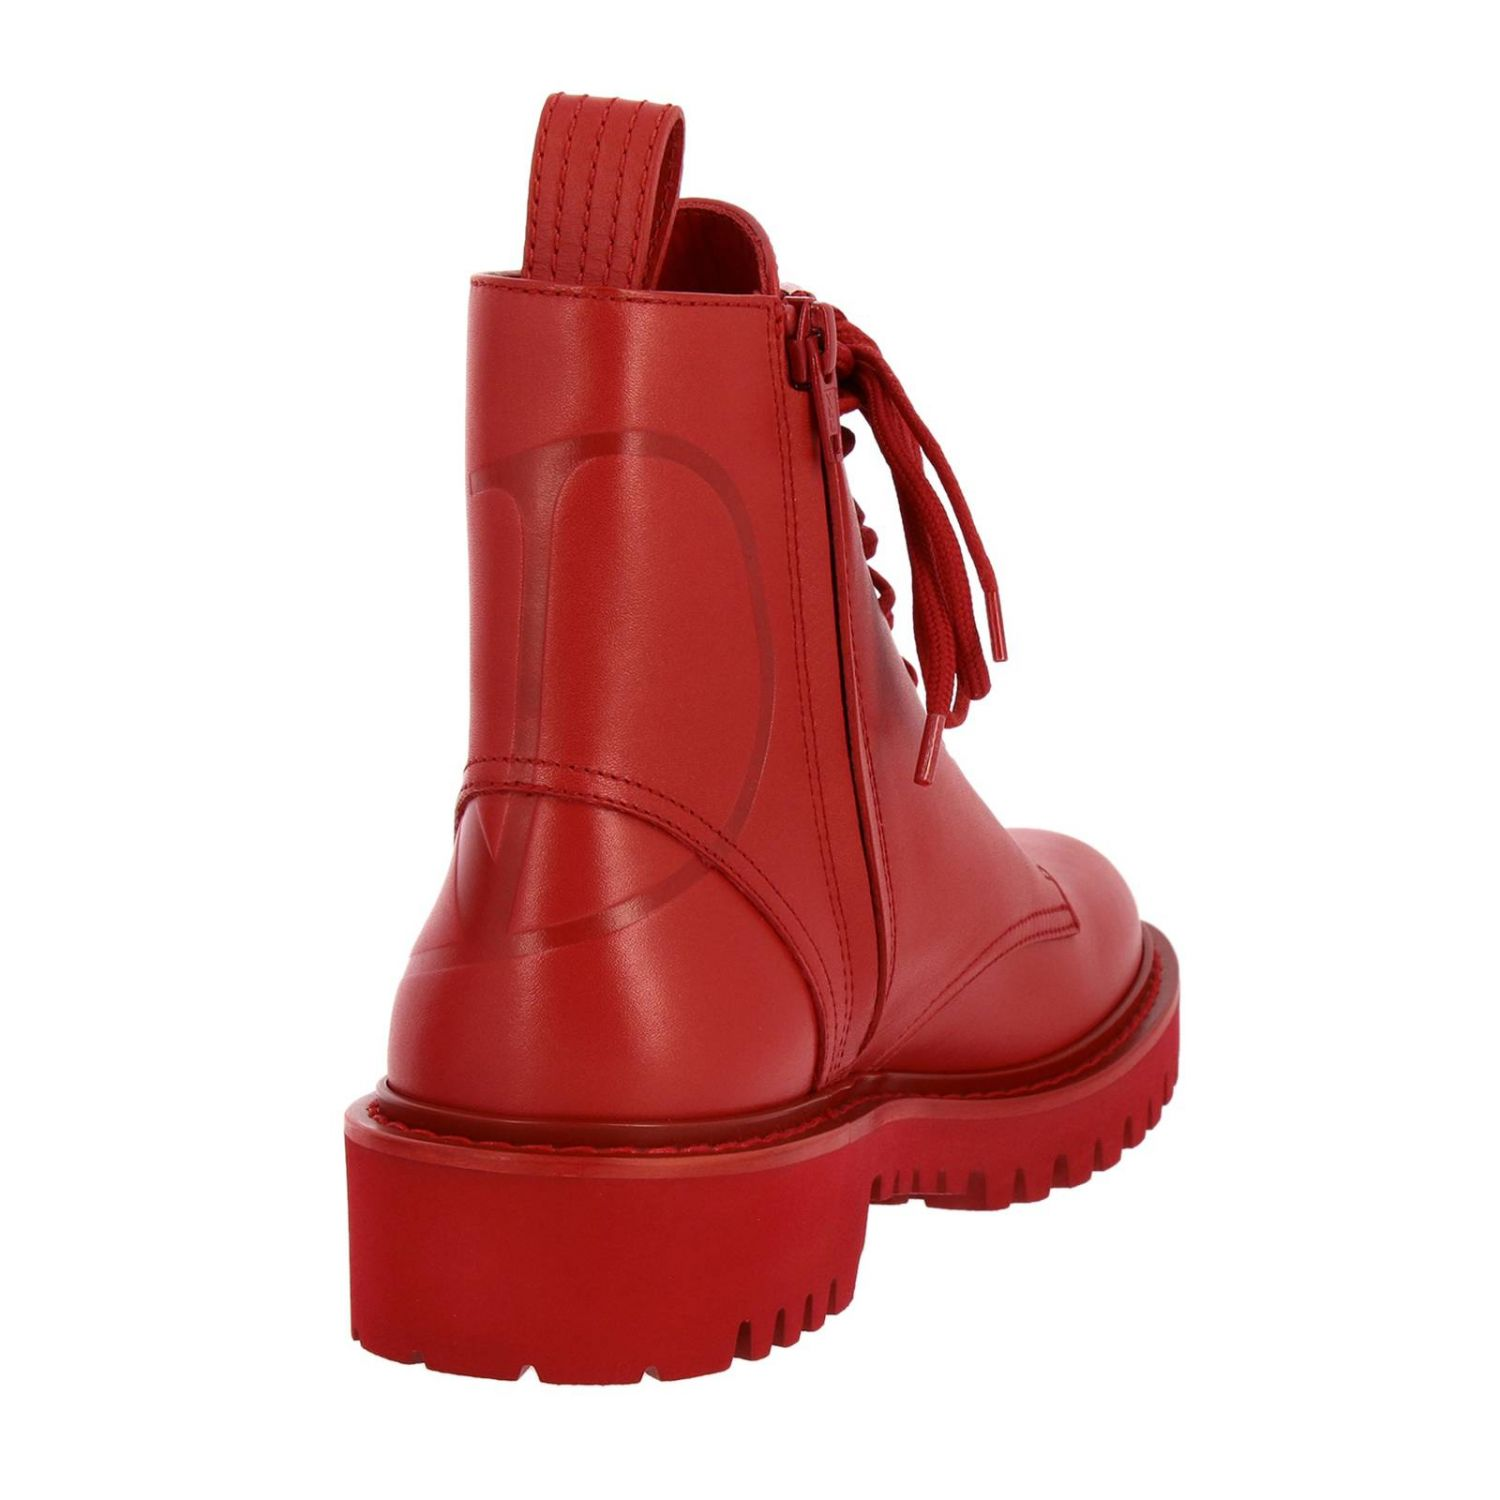 Valentino Garavani VLogo leather boots with rubber sole red 4